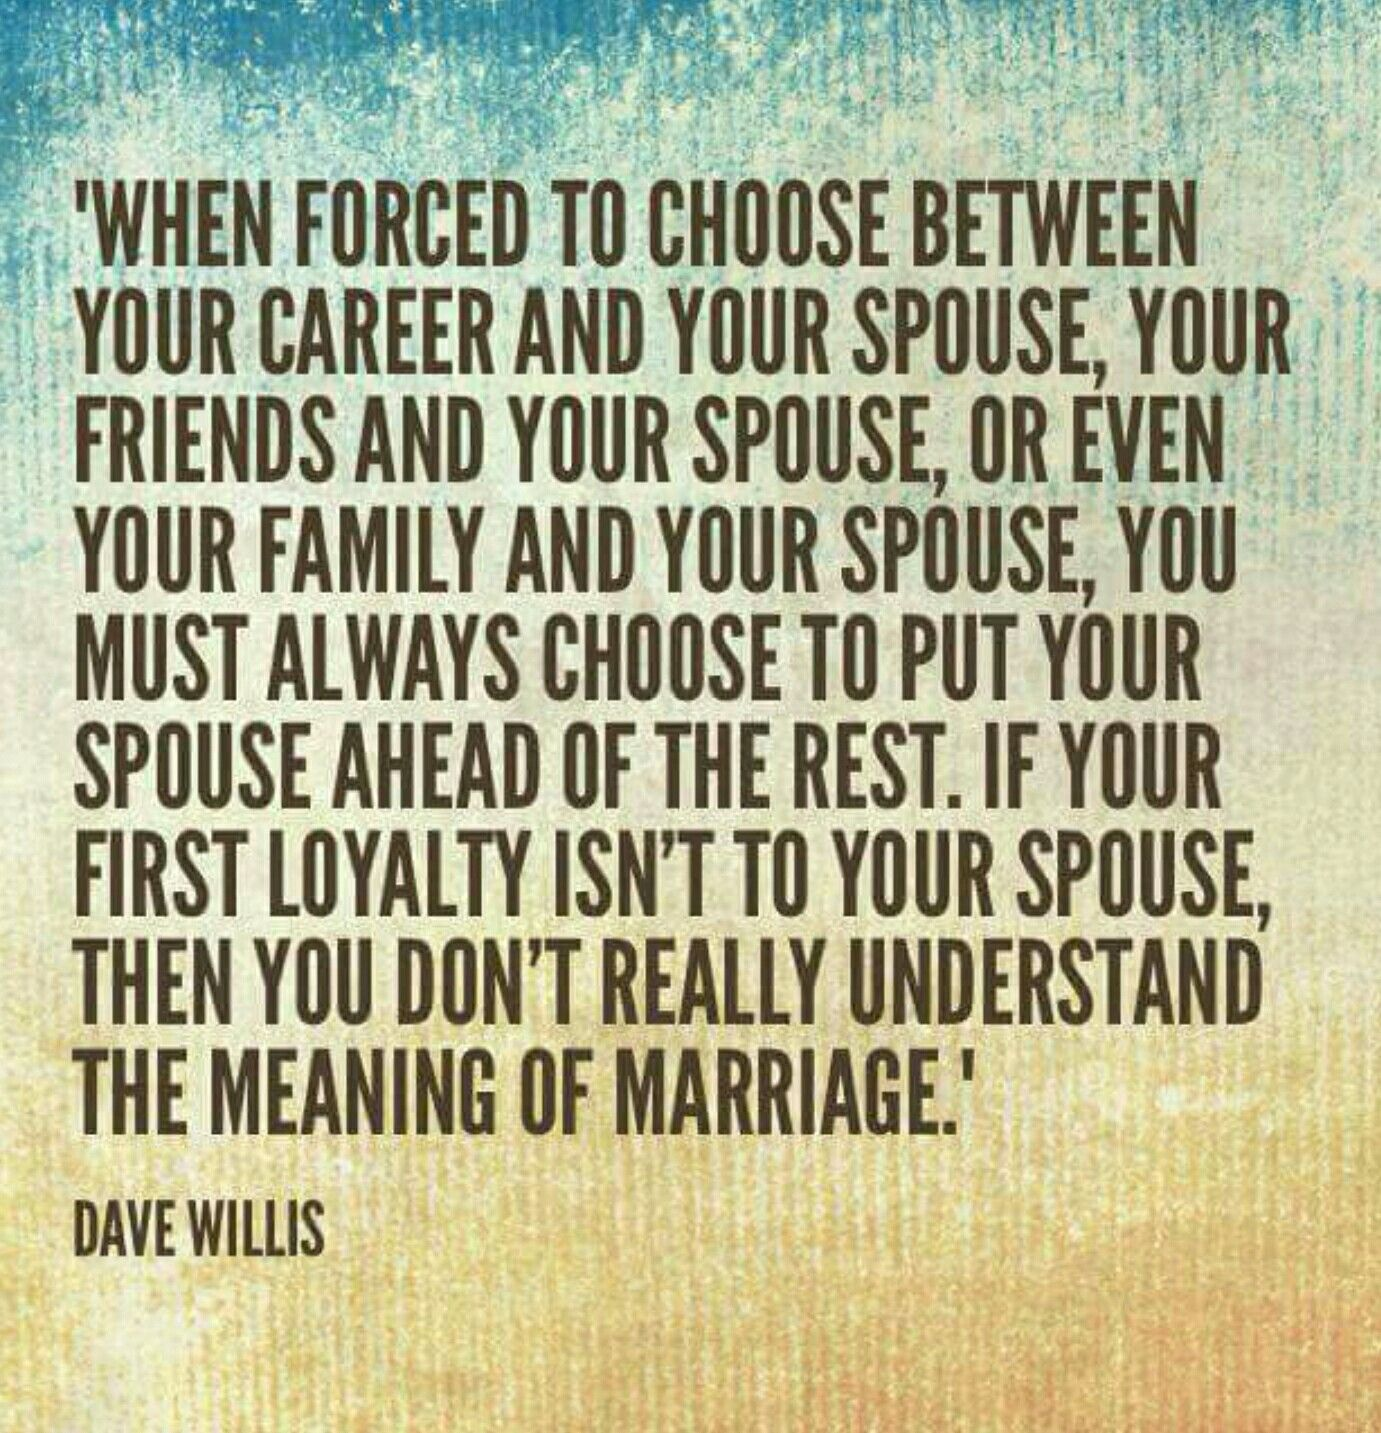 Marriage is putting your spouse first always. | Family